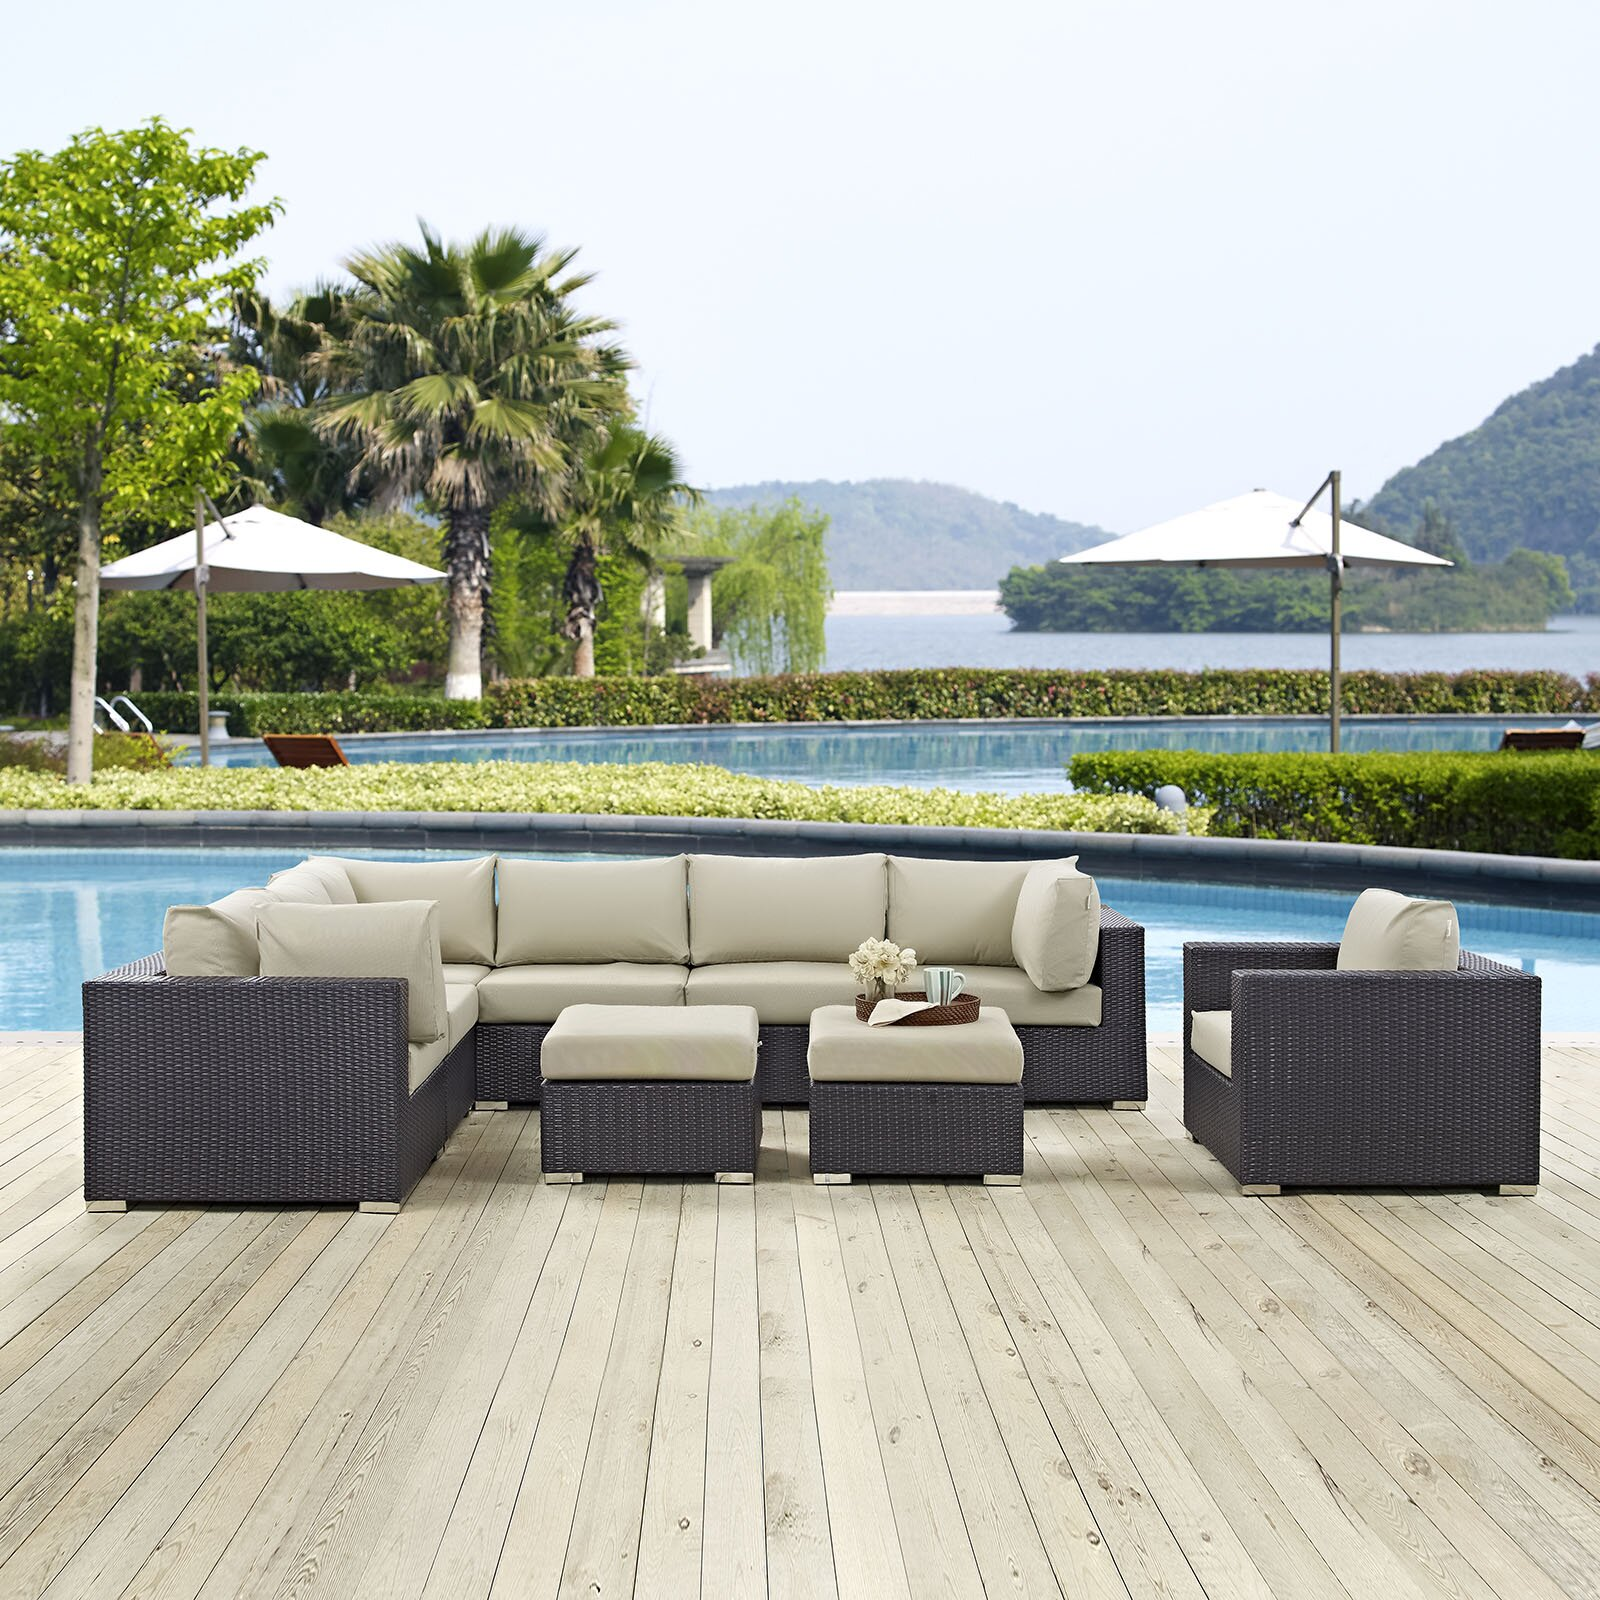 Https Www Wayfair Com Modway Convene 9 Piece Outdoor Patio Sectional Set With Cushions Fow3343 Html